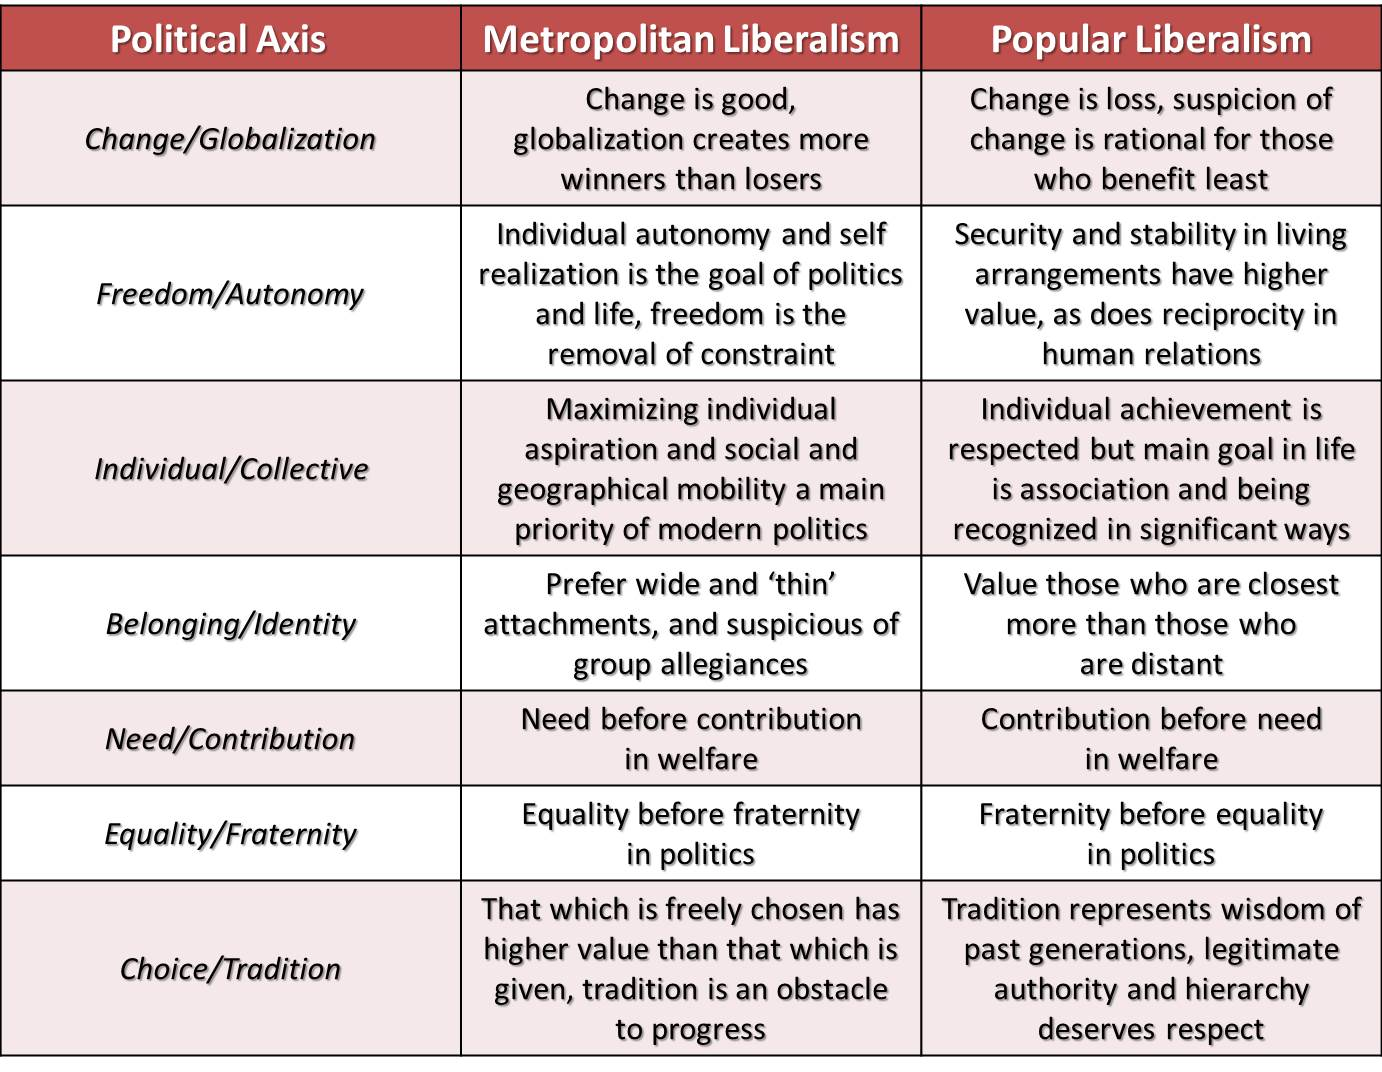 comparing classical vs modern liberalism essay